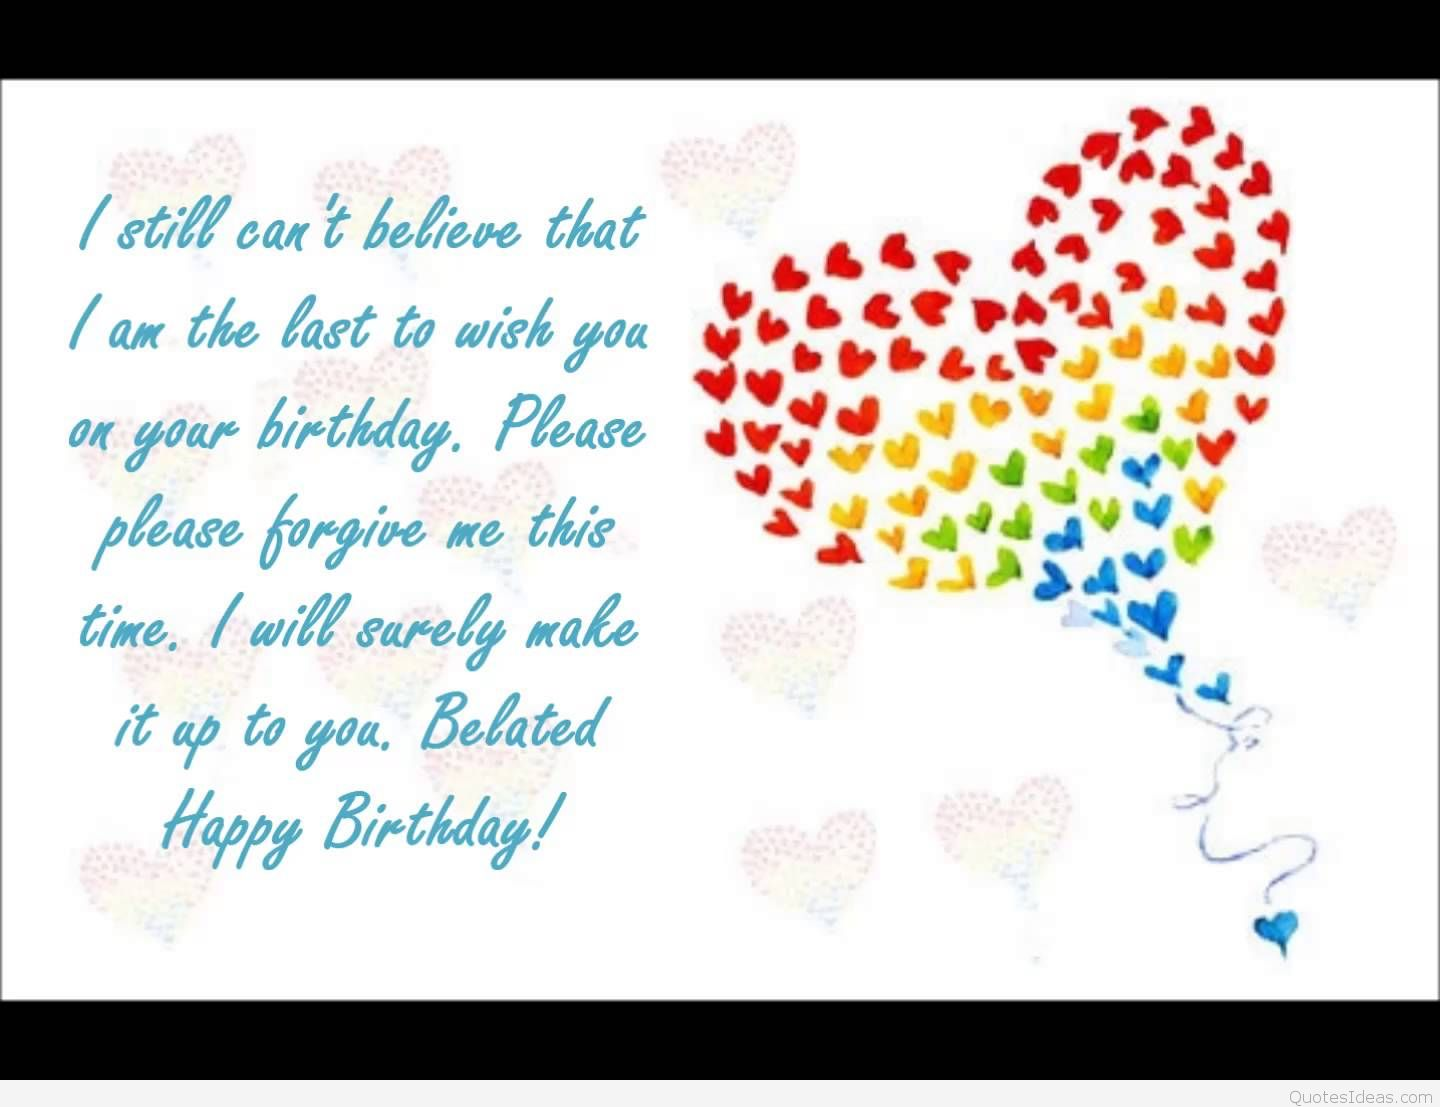 cute birthday card quotes ; belated-birthday-greeting-quotes-wallpapers